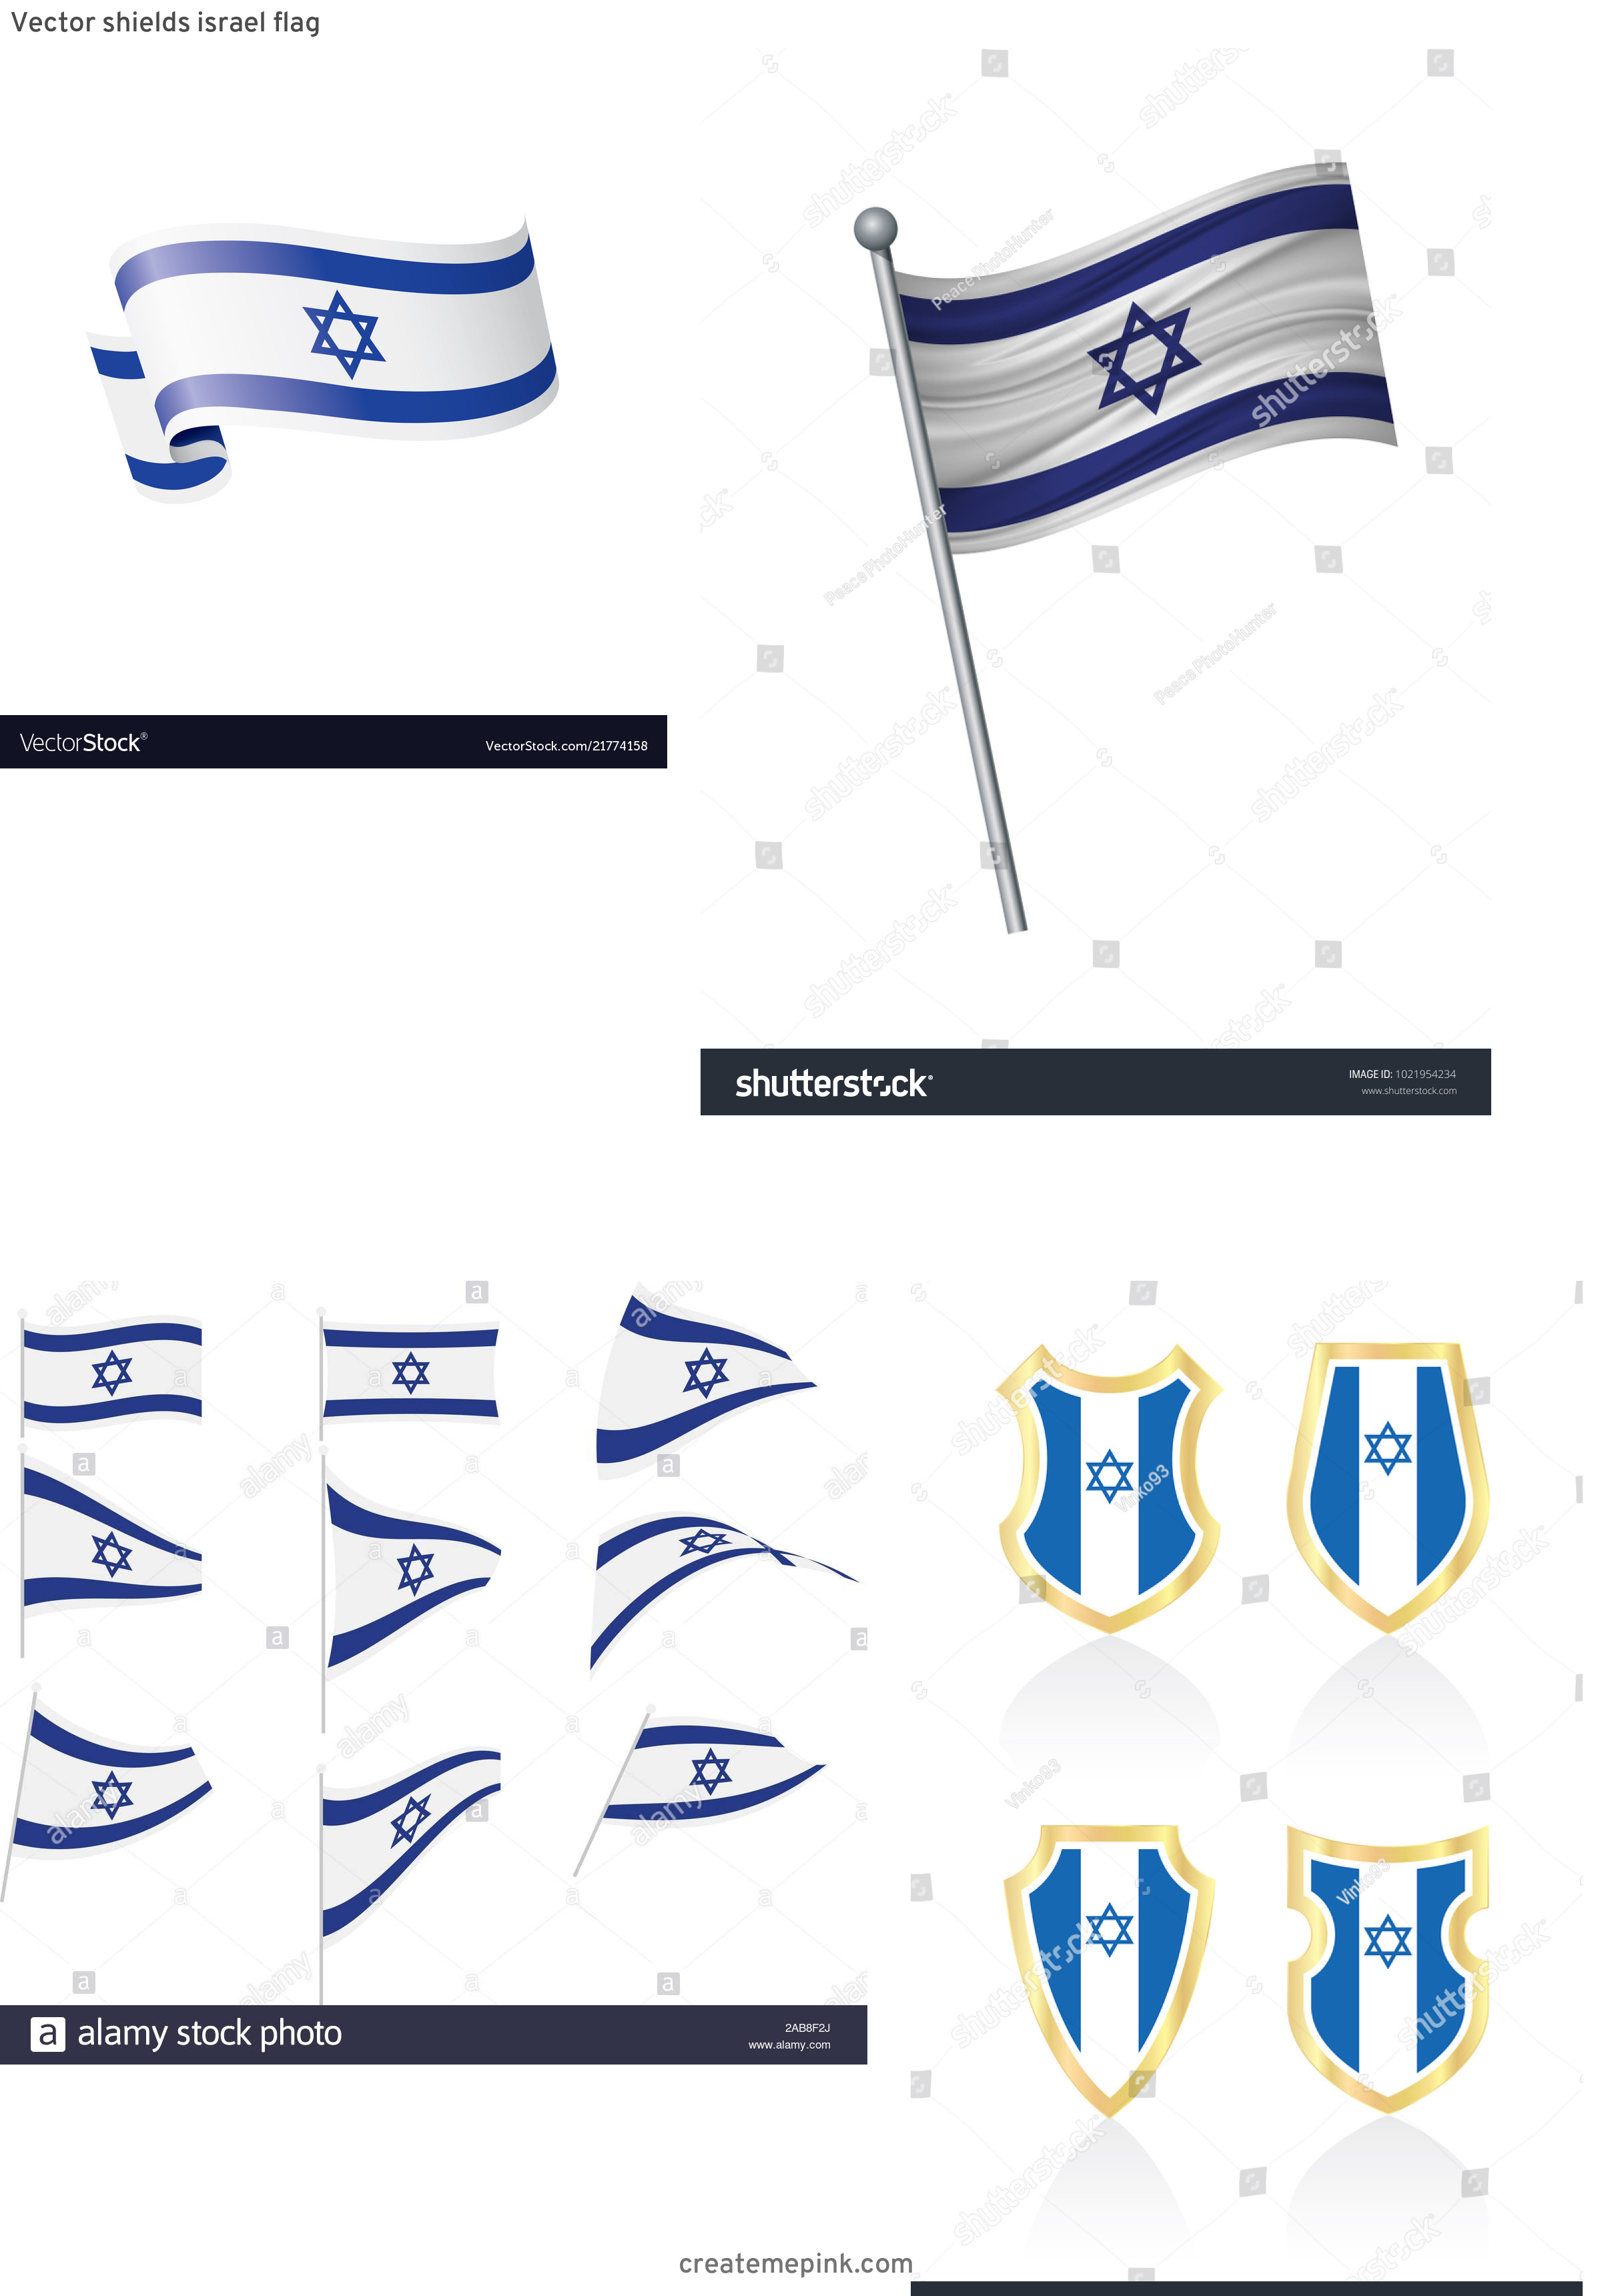 Israel And New Jersey Flag Vector: Vector Shields Israel Flag